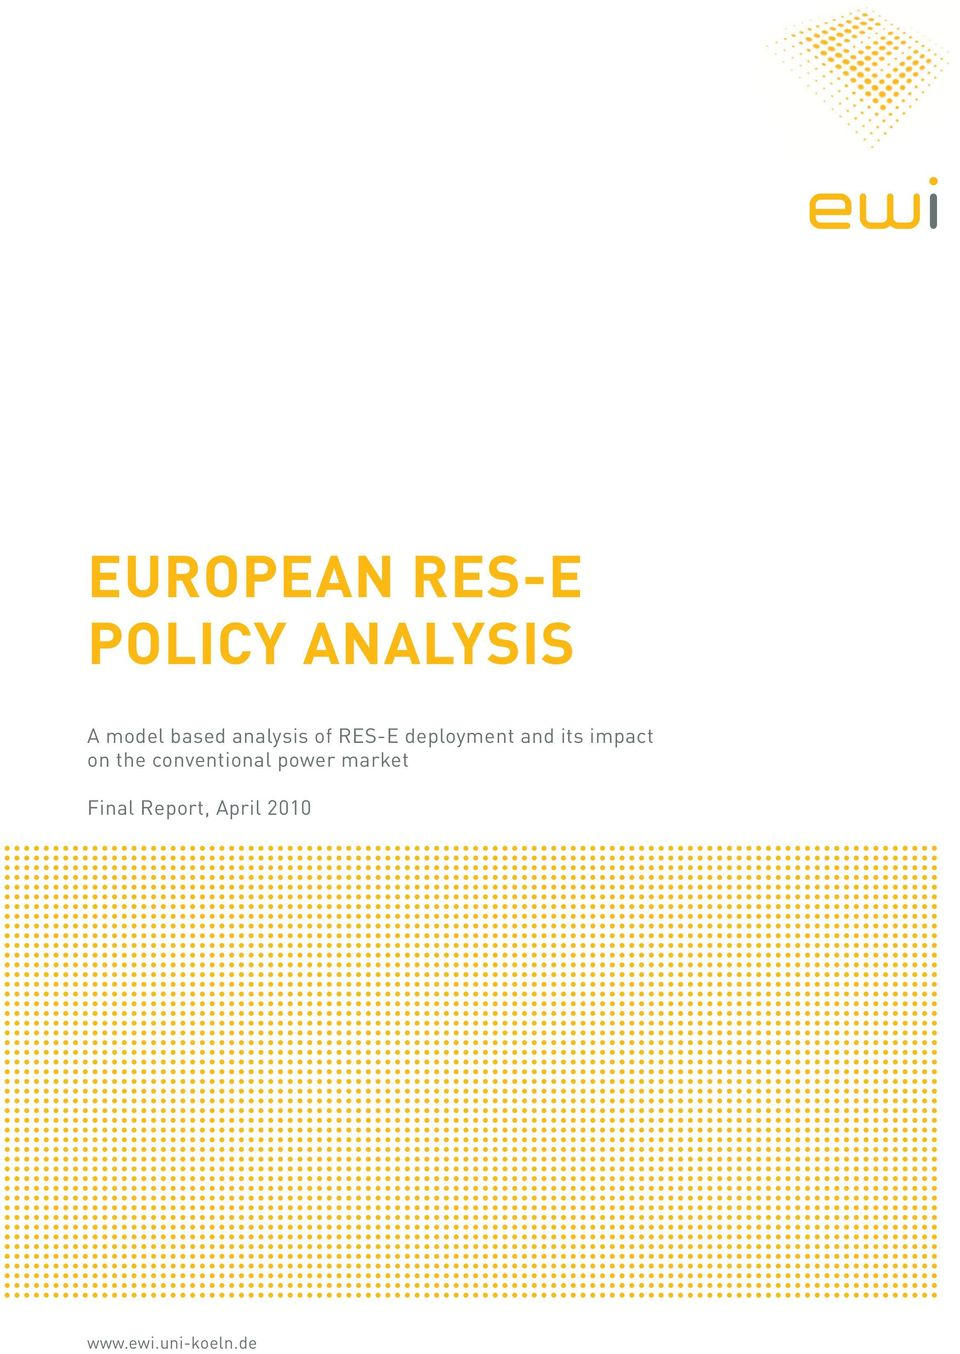 POLICY ANALYSIS A model based analysis of RES-E deployment and its